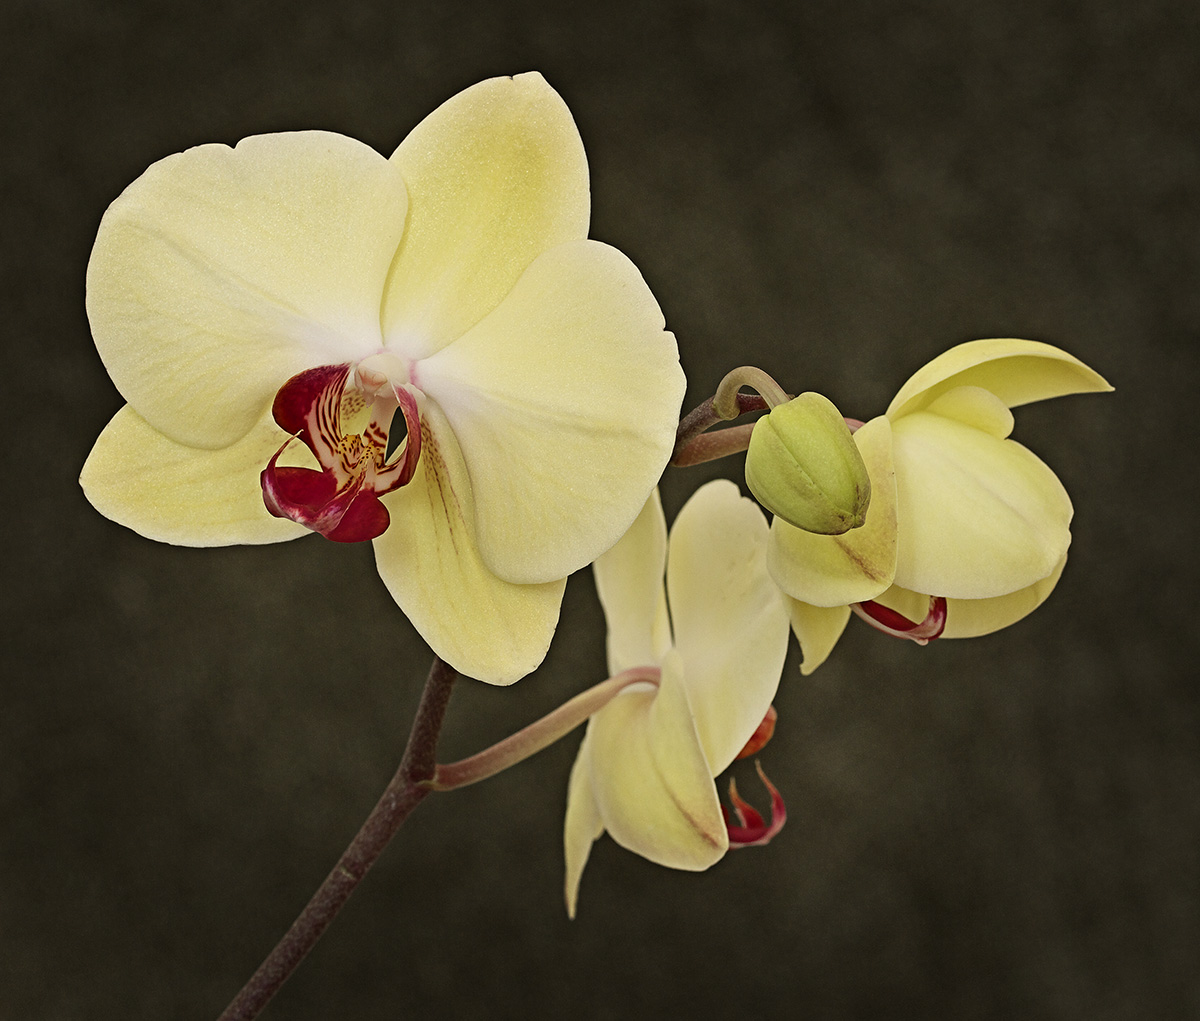 Phalaenopsis Orchid by Cindy Flood in Cindy Flood